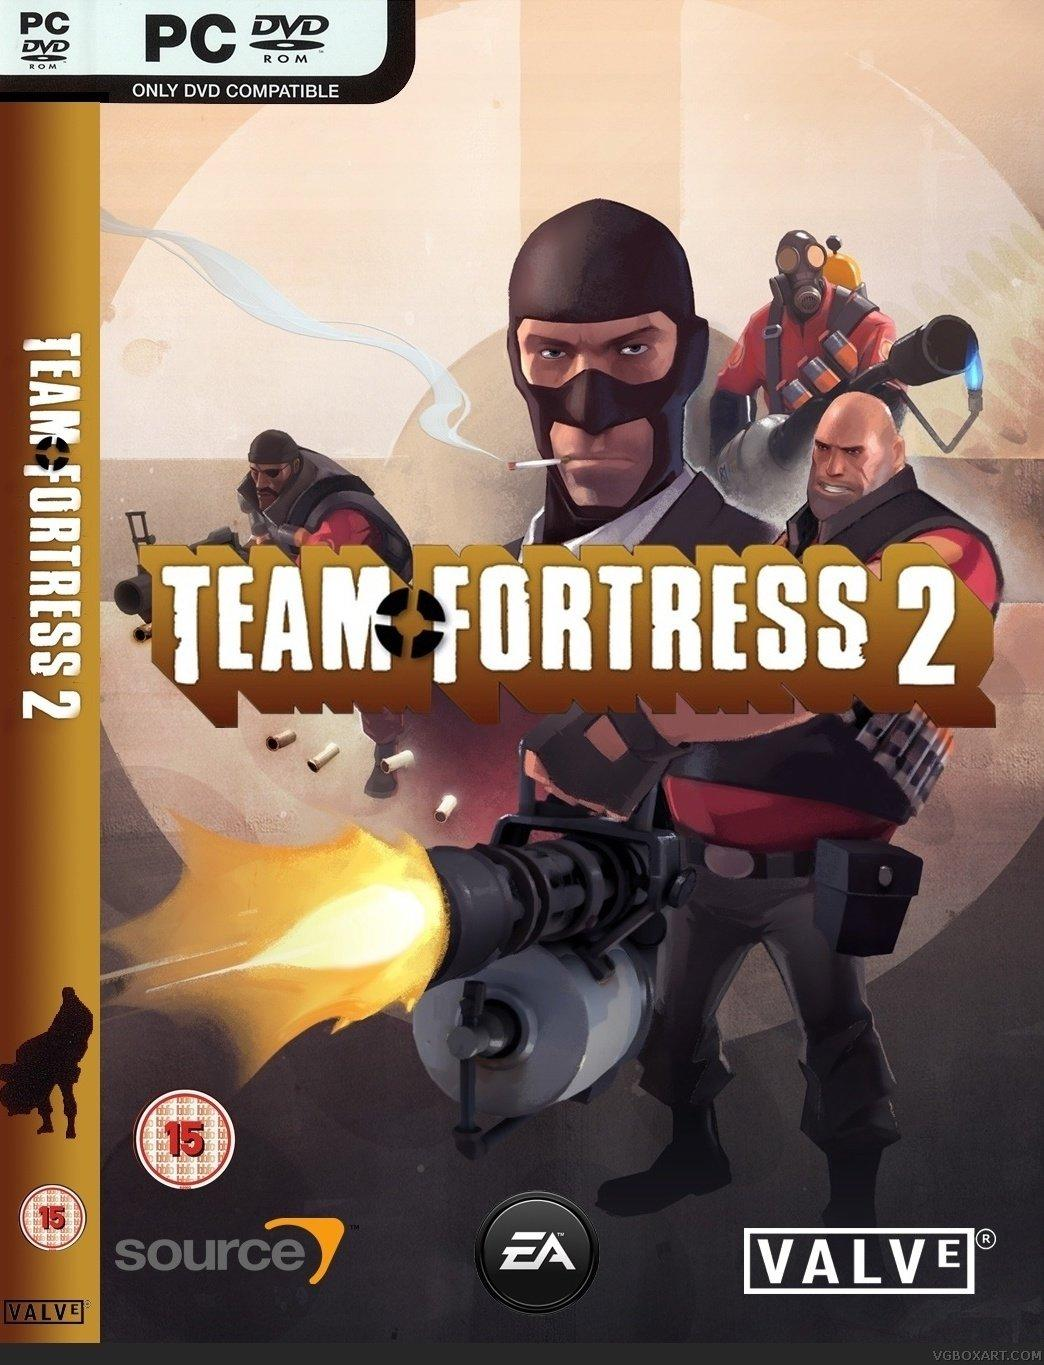 About Team Fortress 2